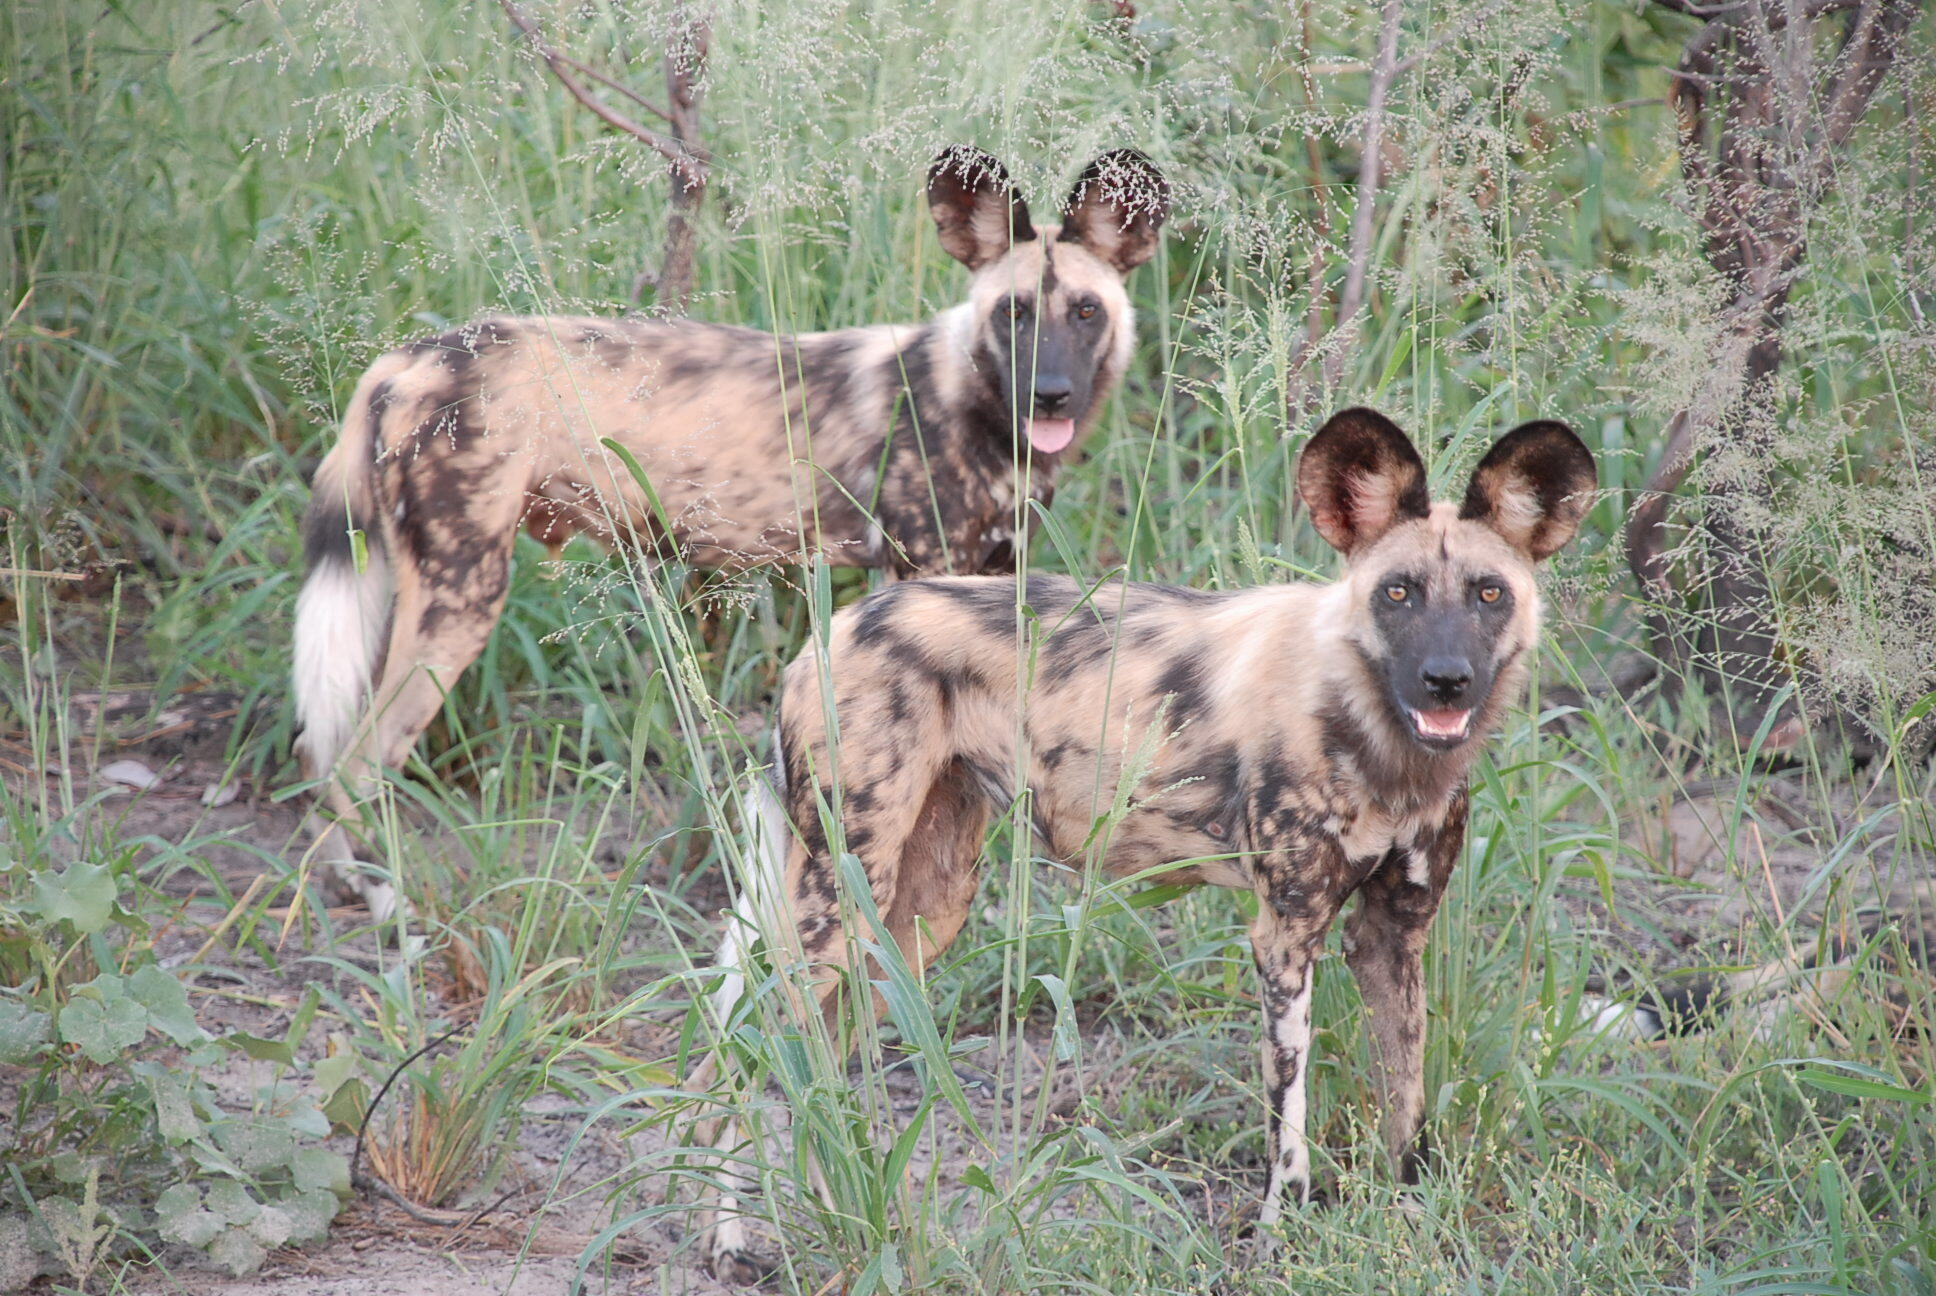 Paying attention: researchers say close monitoring of wild dogs' behaviour could keep them safely away from human activity.